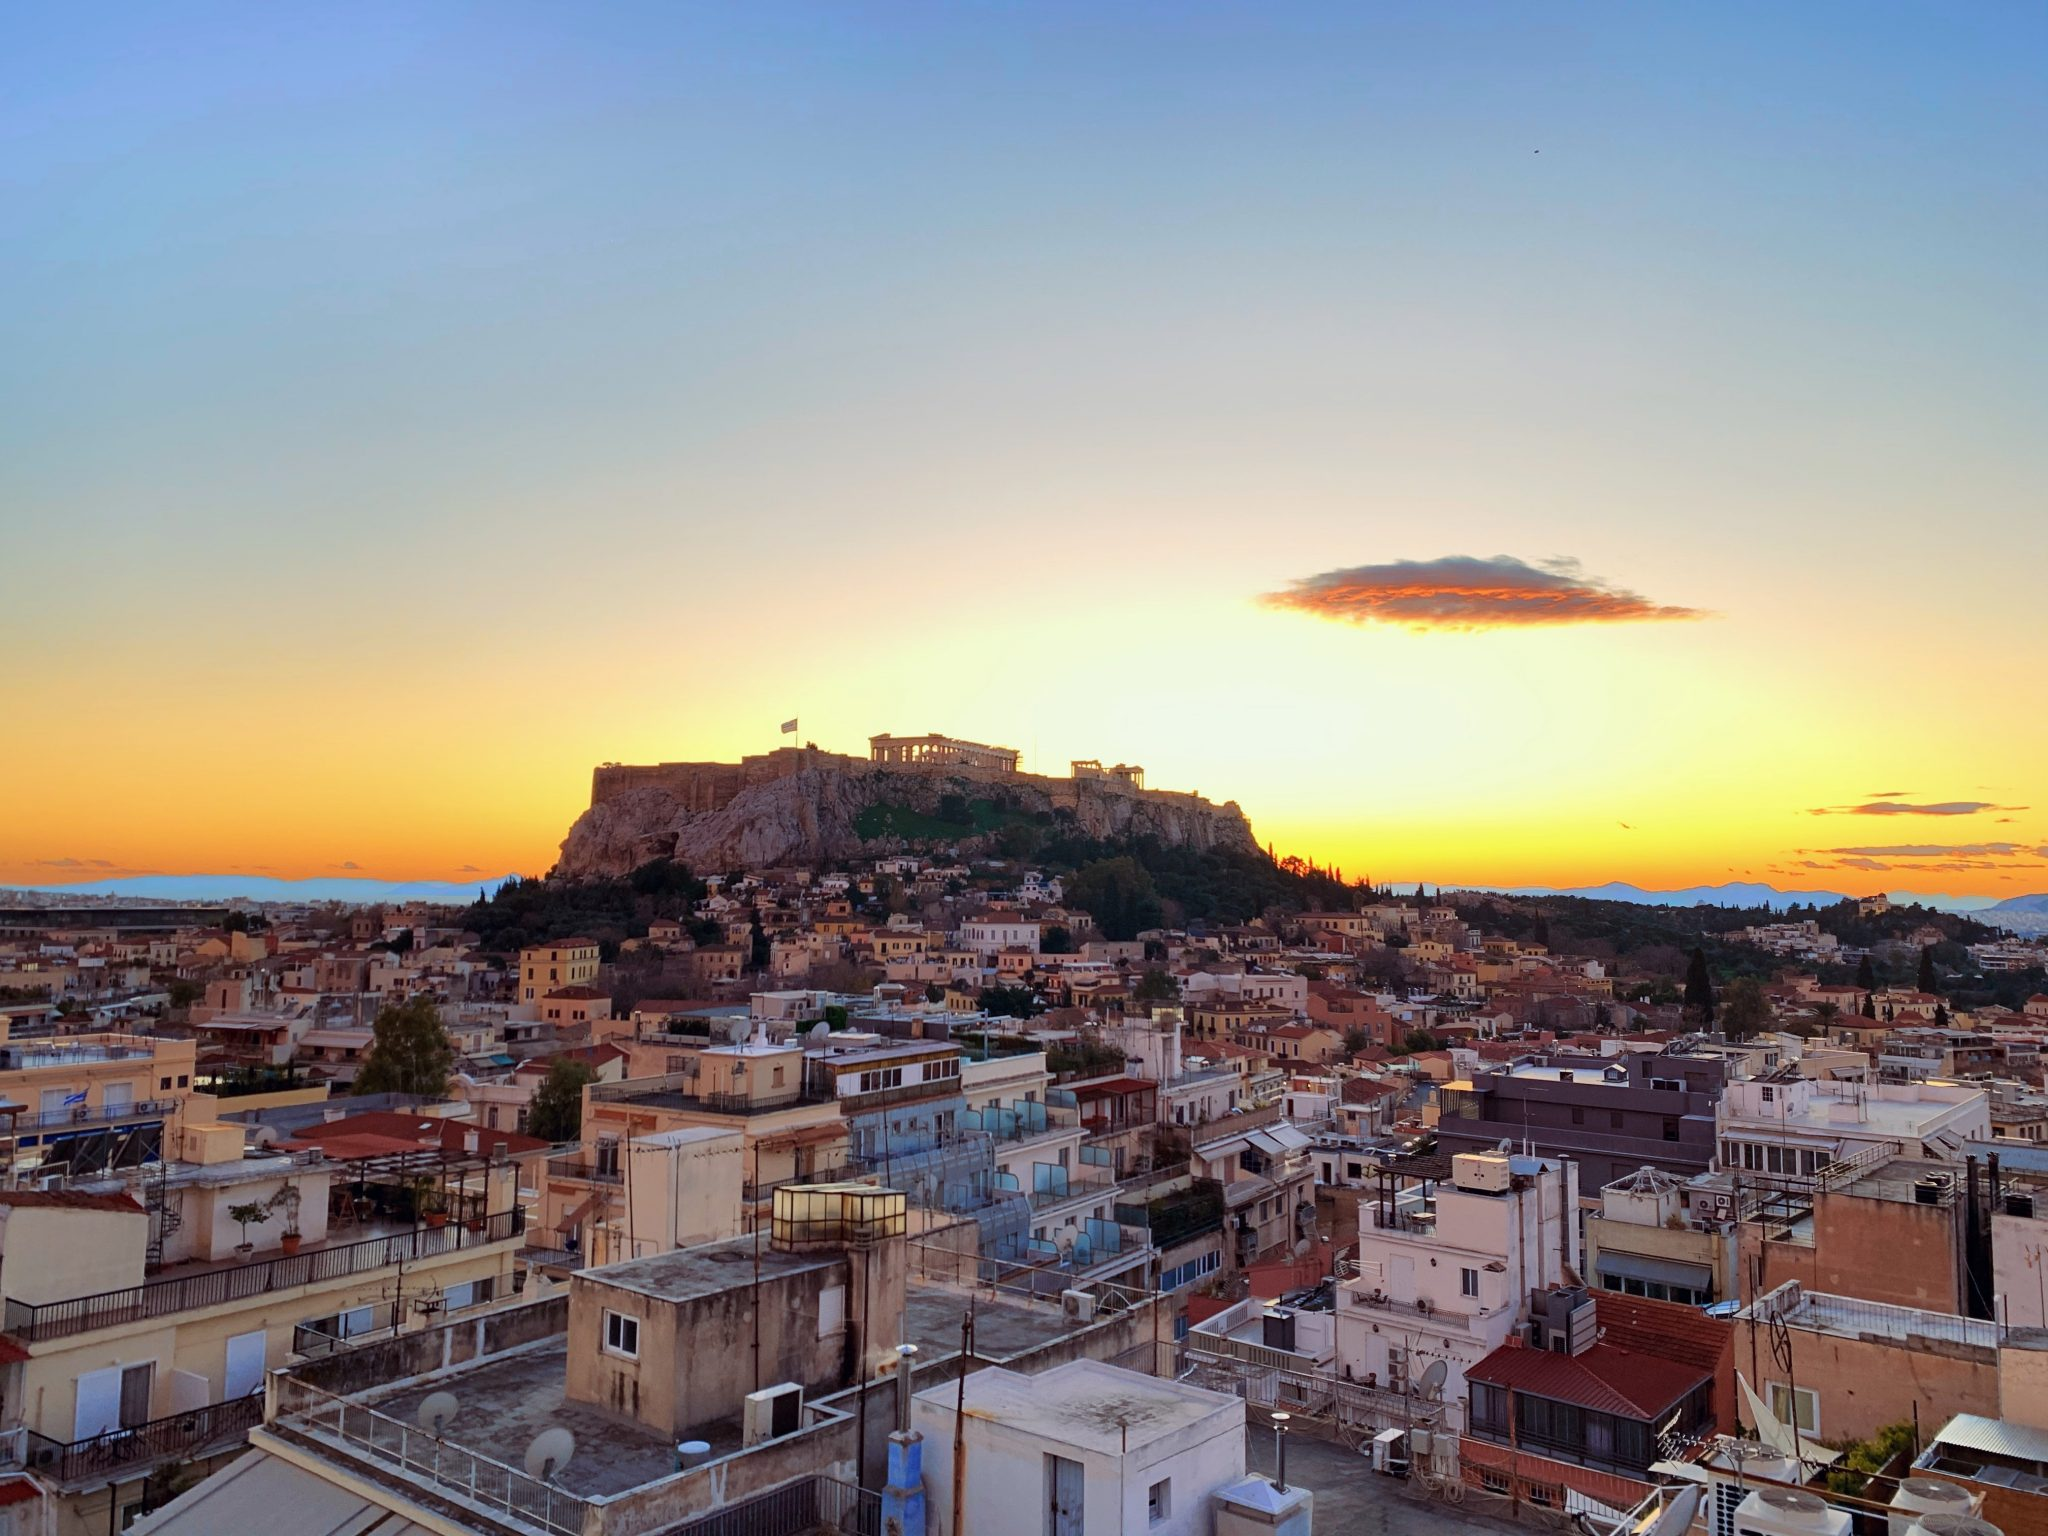 Acropolis from at distance at sunset